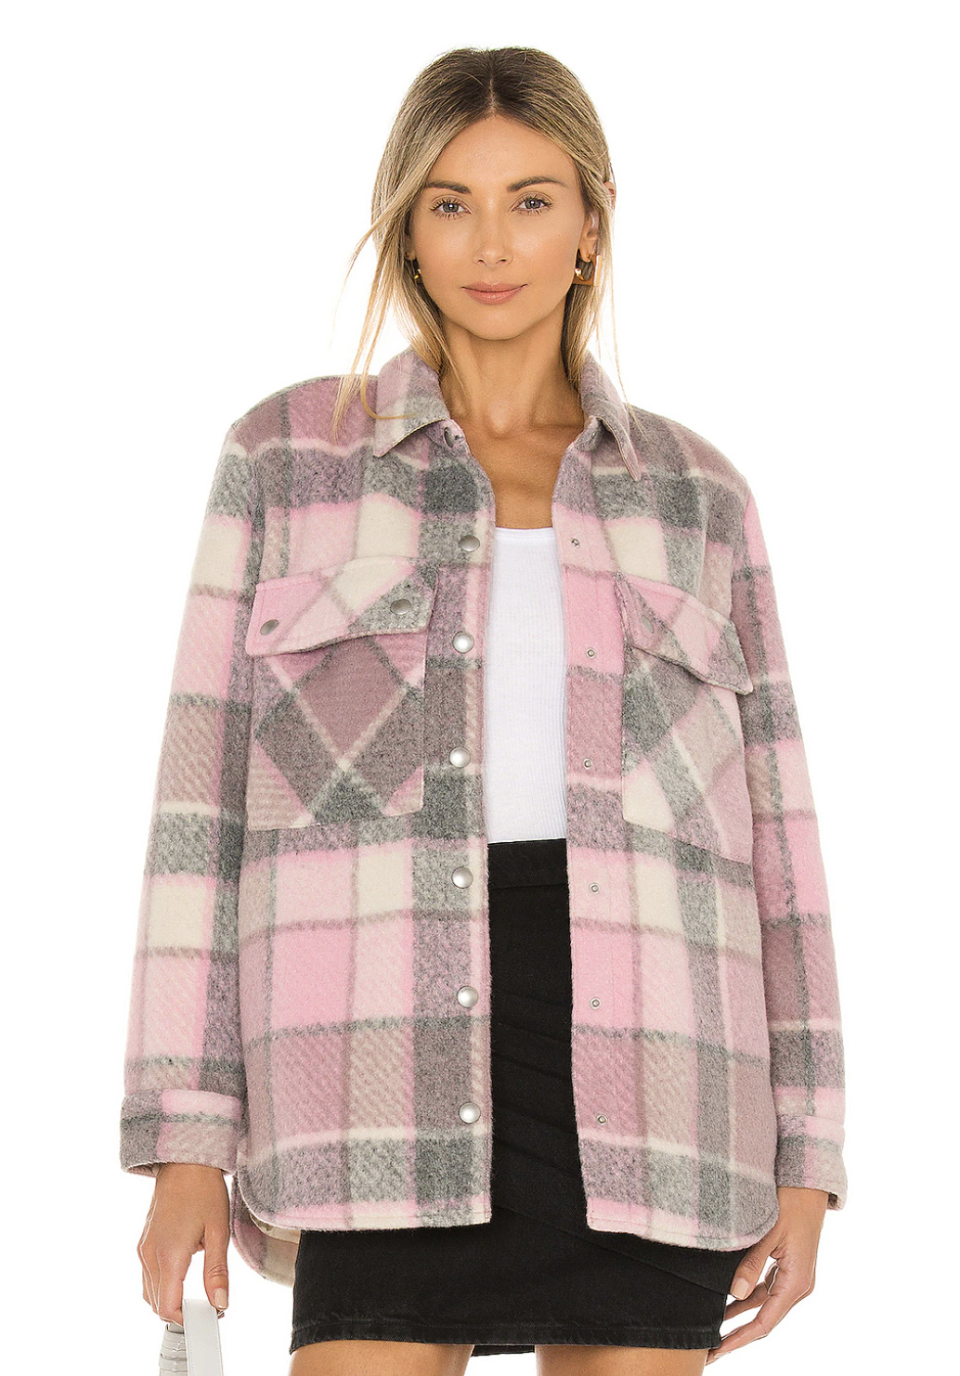 blonde model wearing pink and grey Blank NYC Flannel Shacket